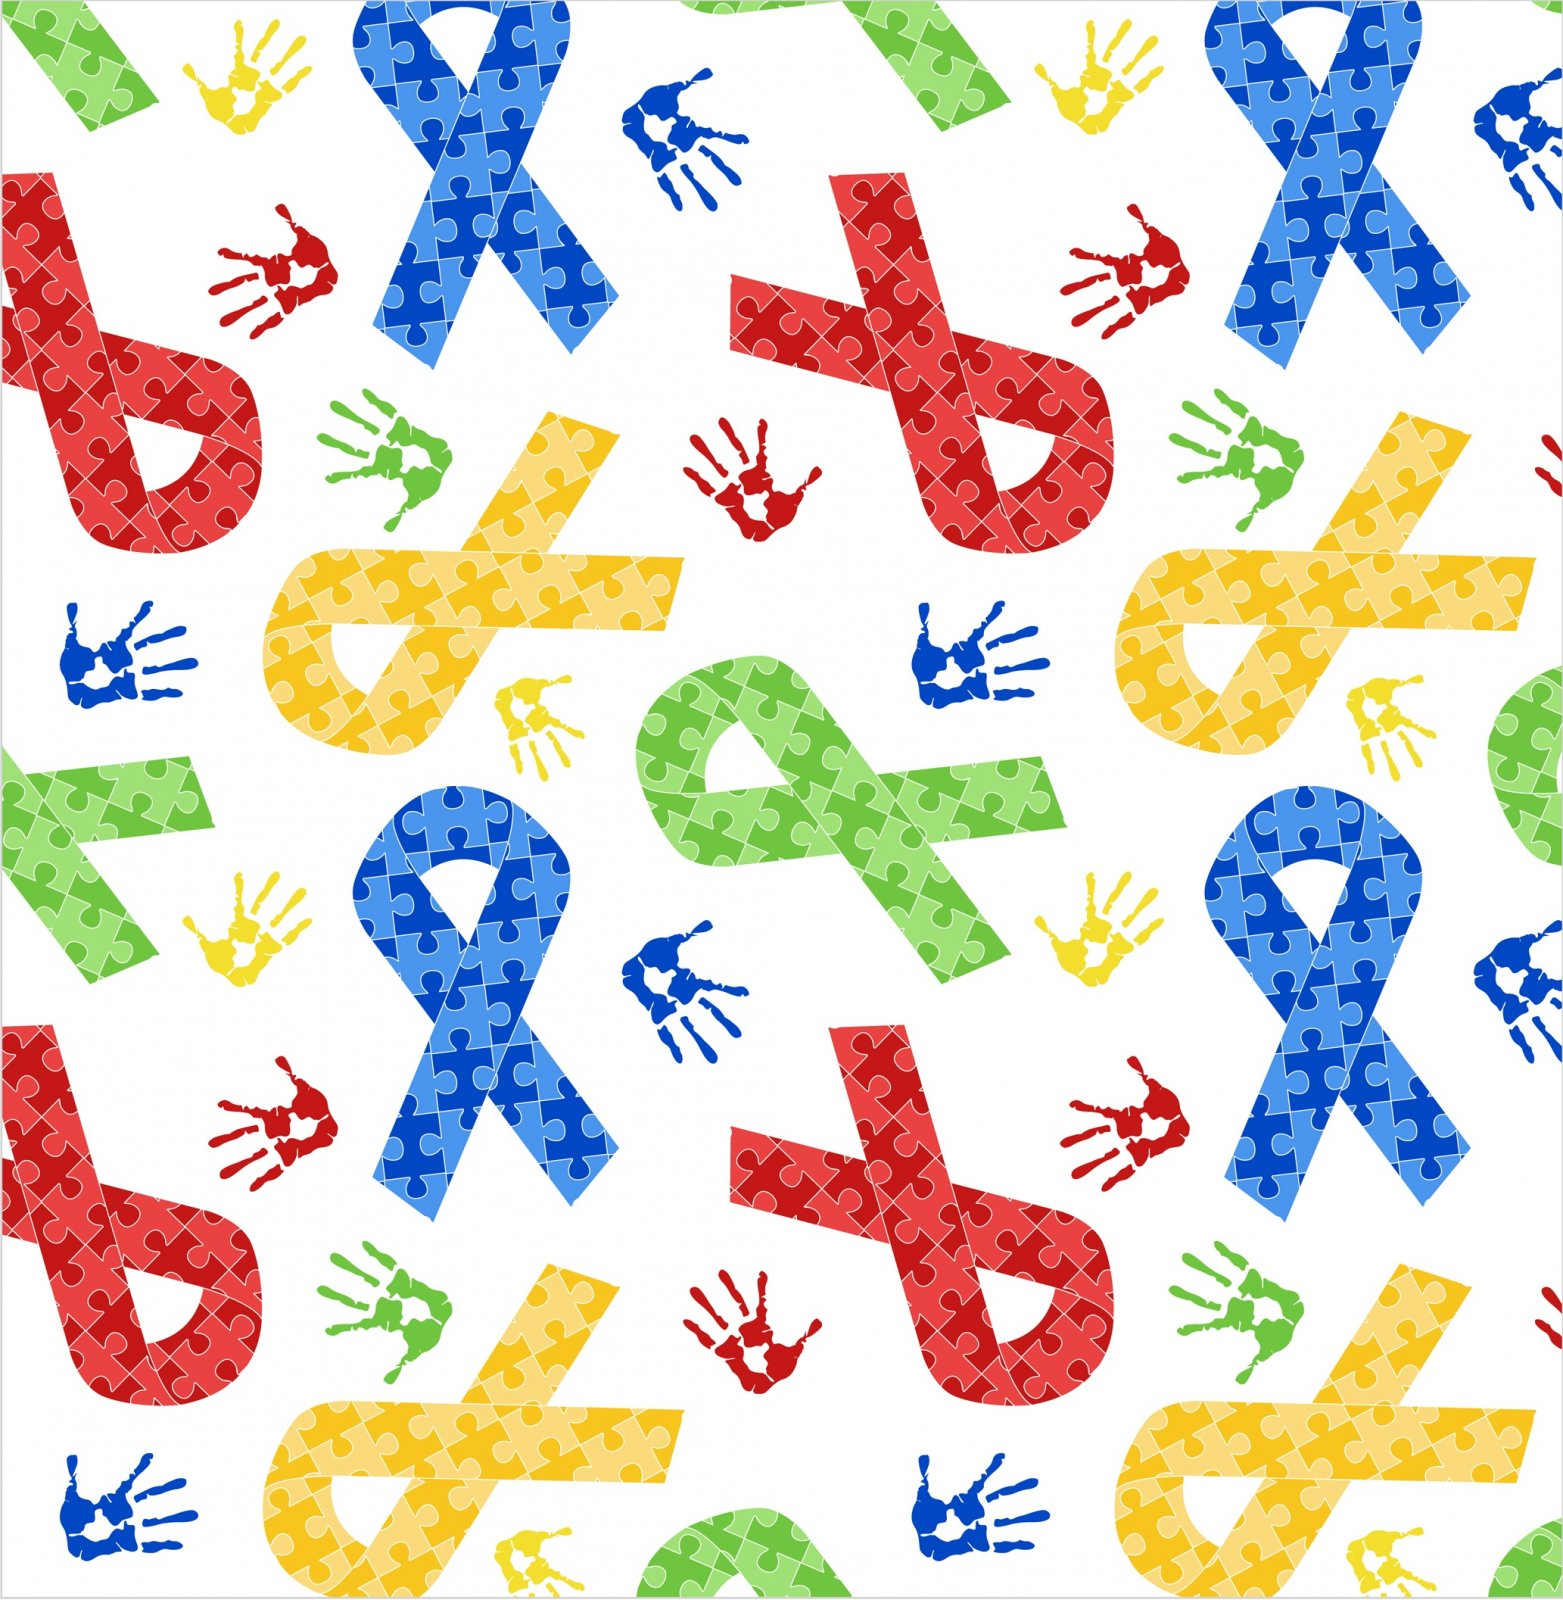 DT-Foust Exclusive Digital Prints DX-2549-0C-1 White - Puzzle Ribbons and Hand Prints